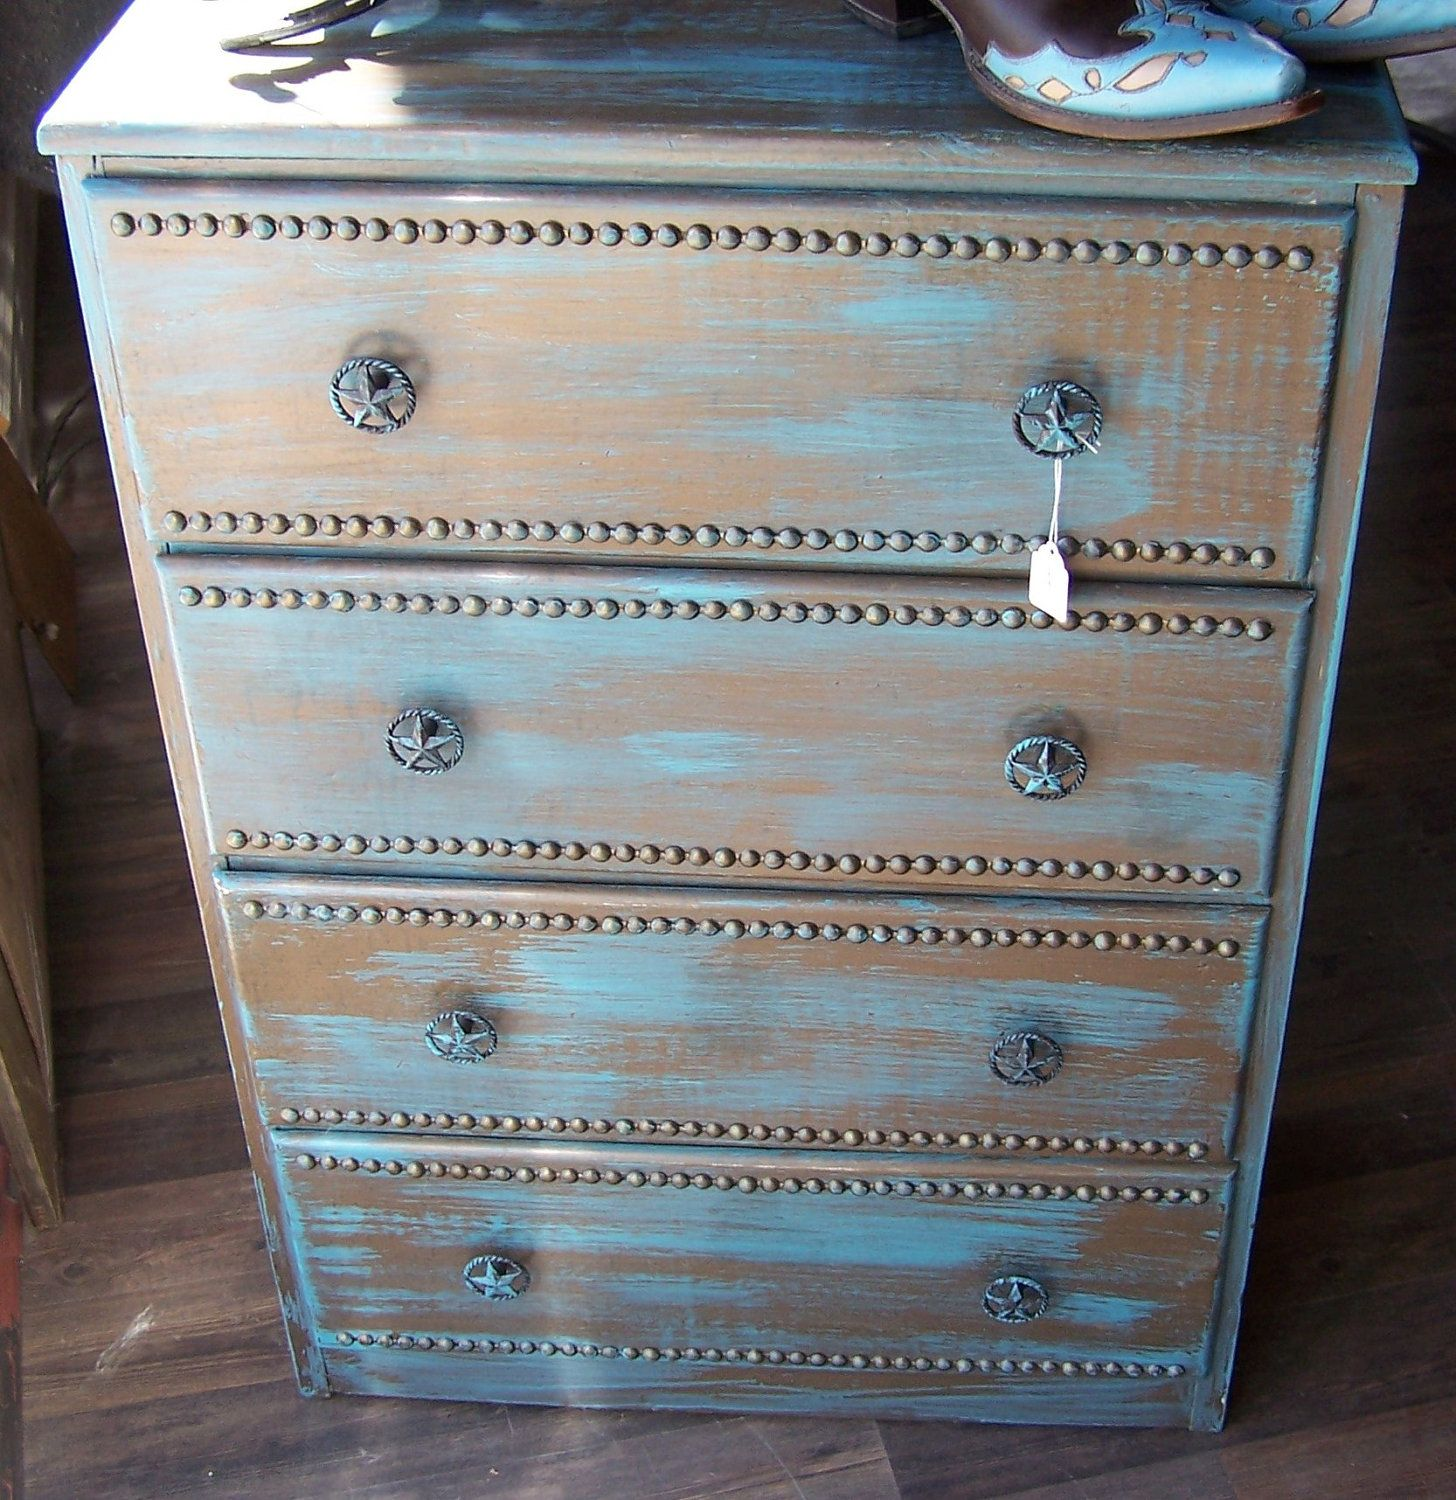 Southern State Rustic Furniture Accessories: Half Moon Emporium - Great Refinished Dresser